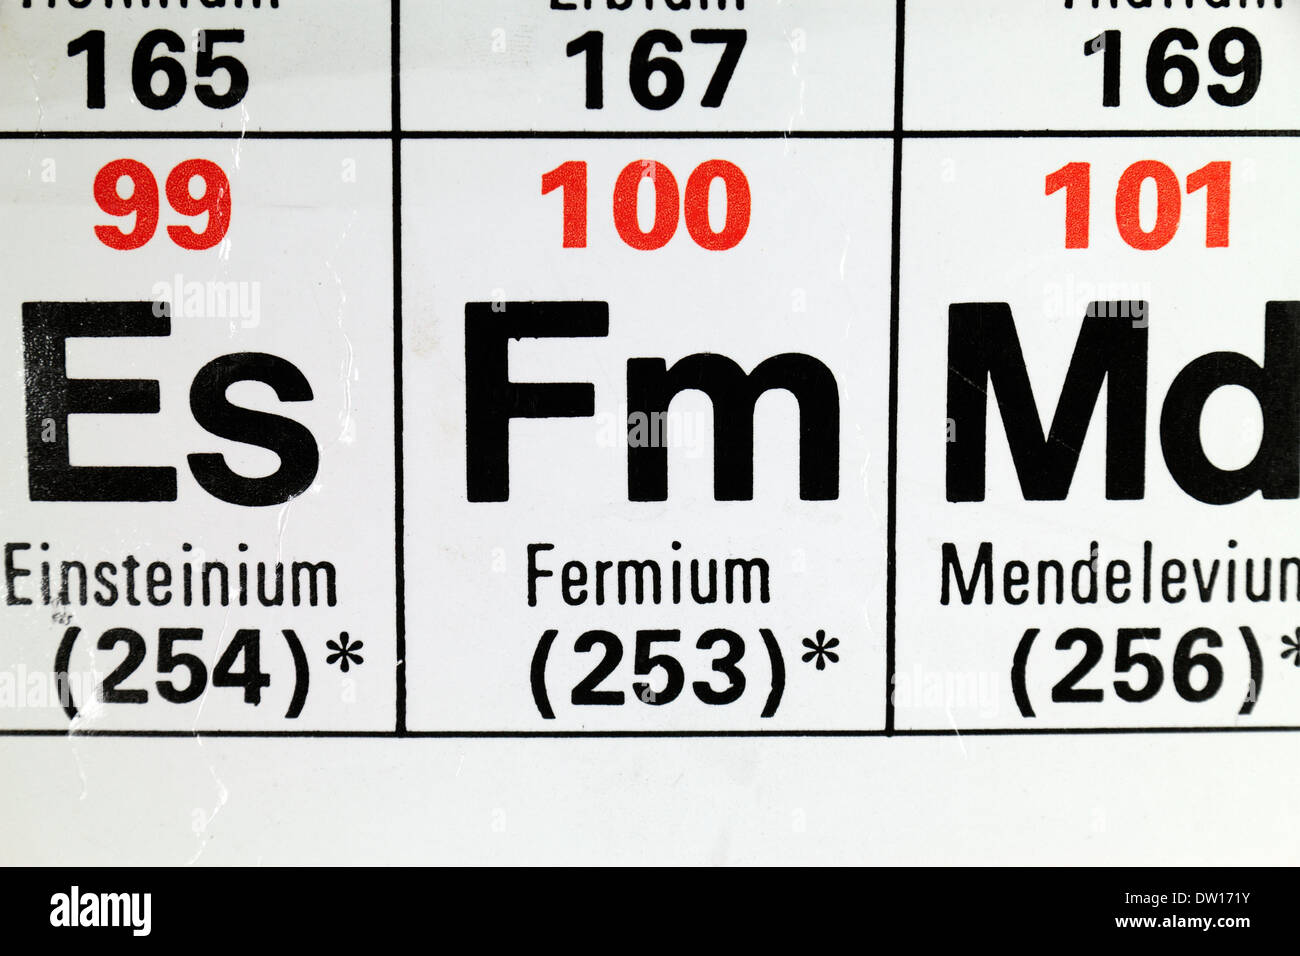 Fermium fm as it appears on the periodic table stock for 102 periodic table